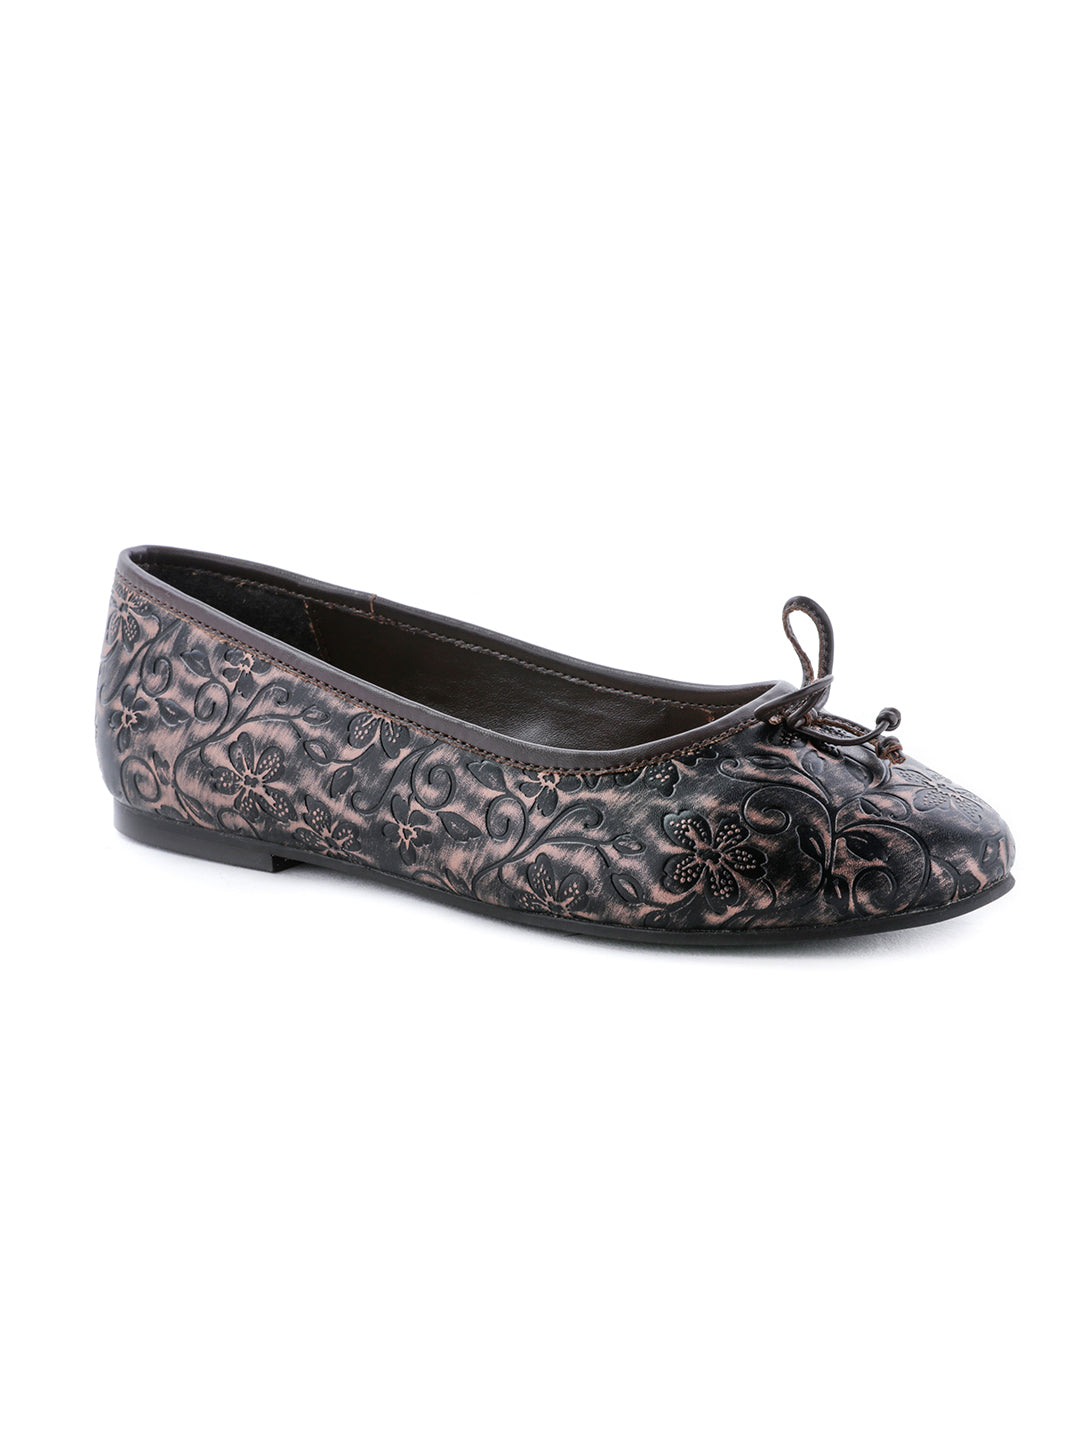 Womens Flower Engraving Brown Ballerinas - London Rag India